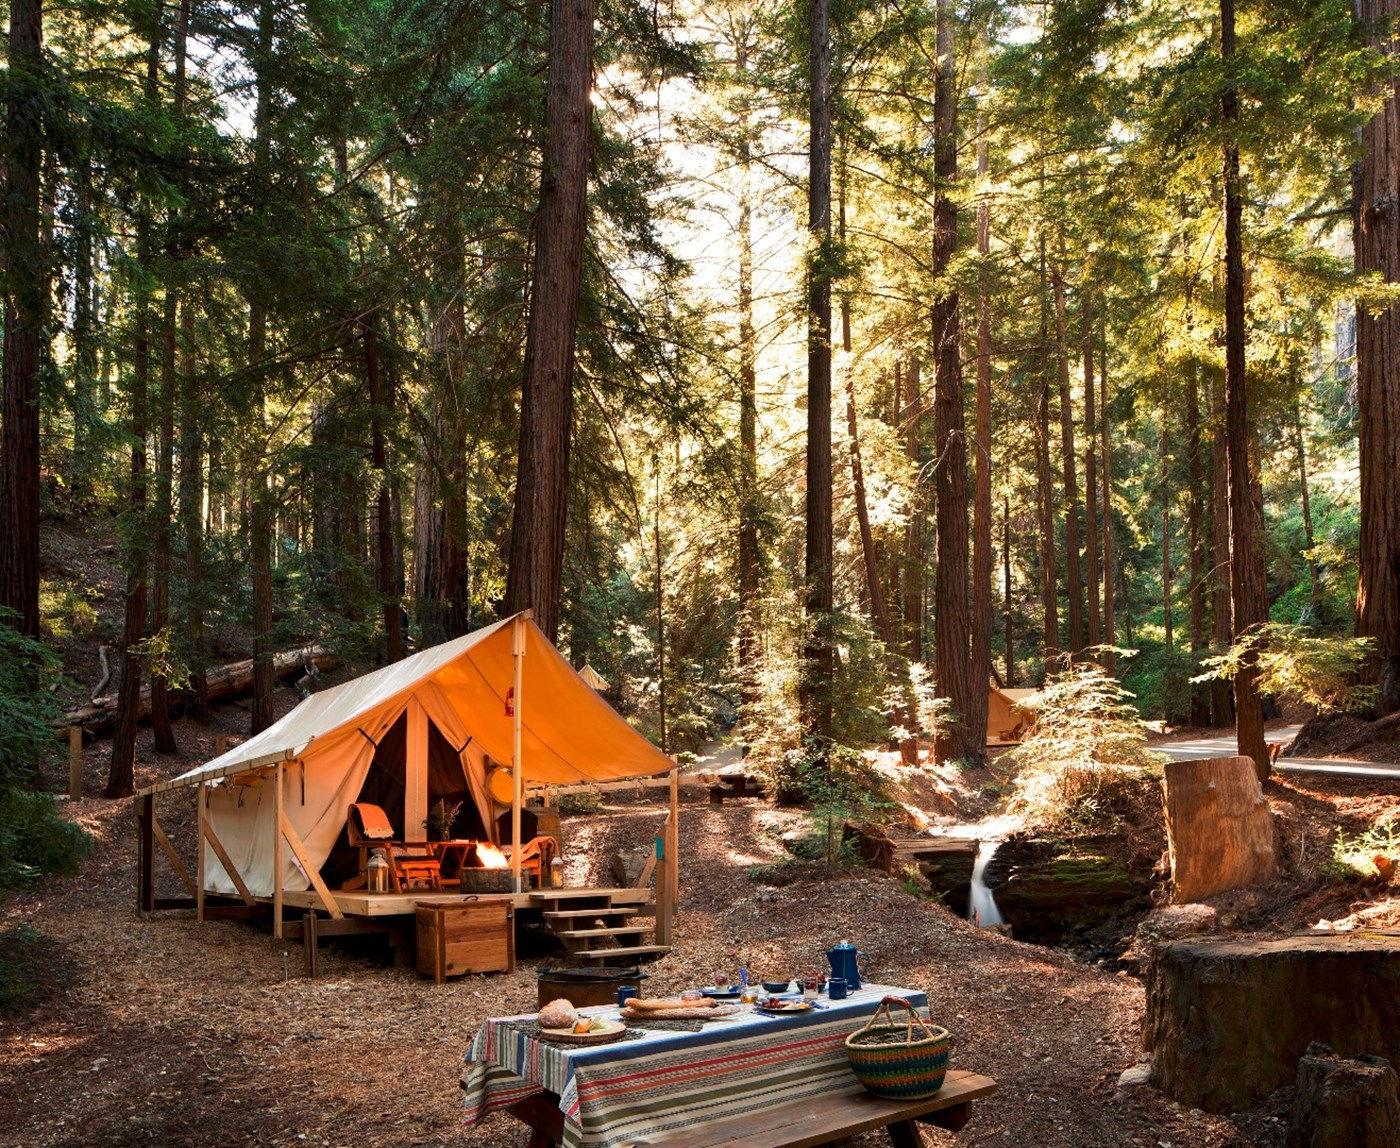 Let Big Sur S Luxurious New Glamping Set Up Fuel Your